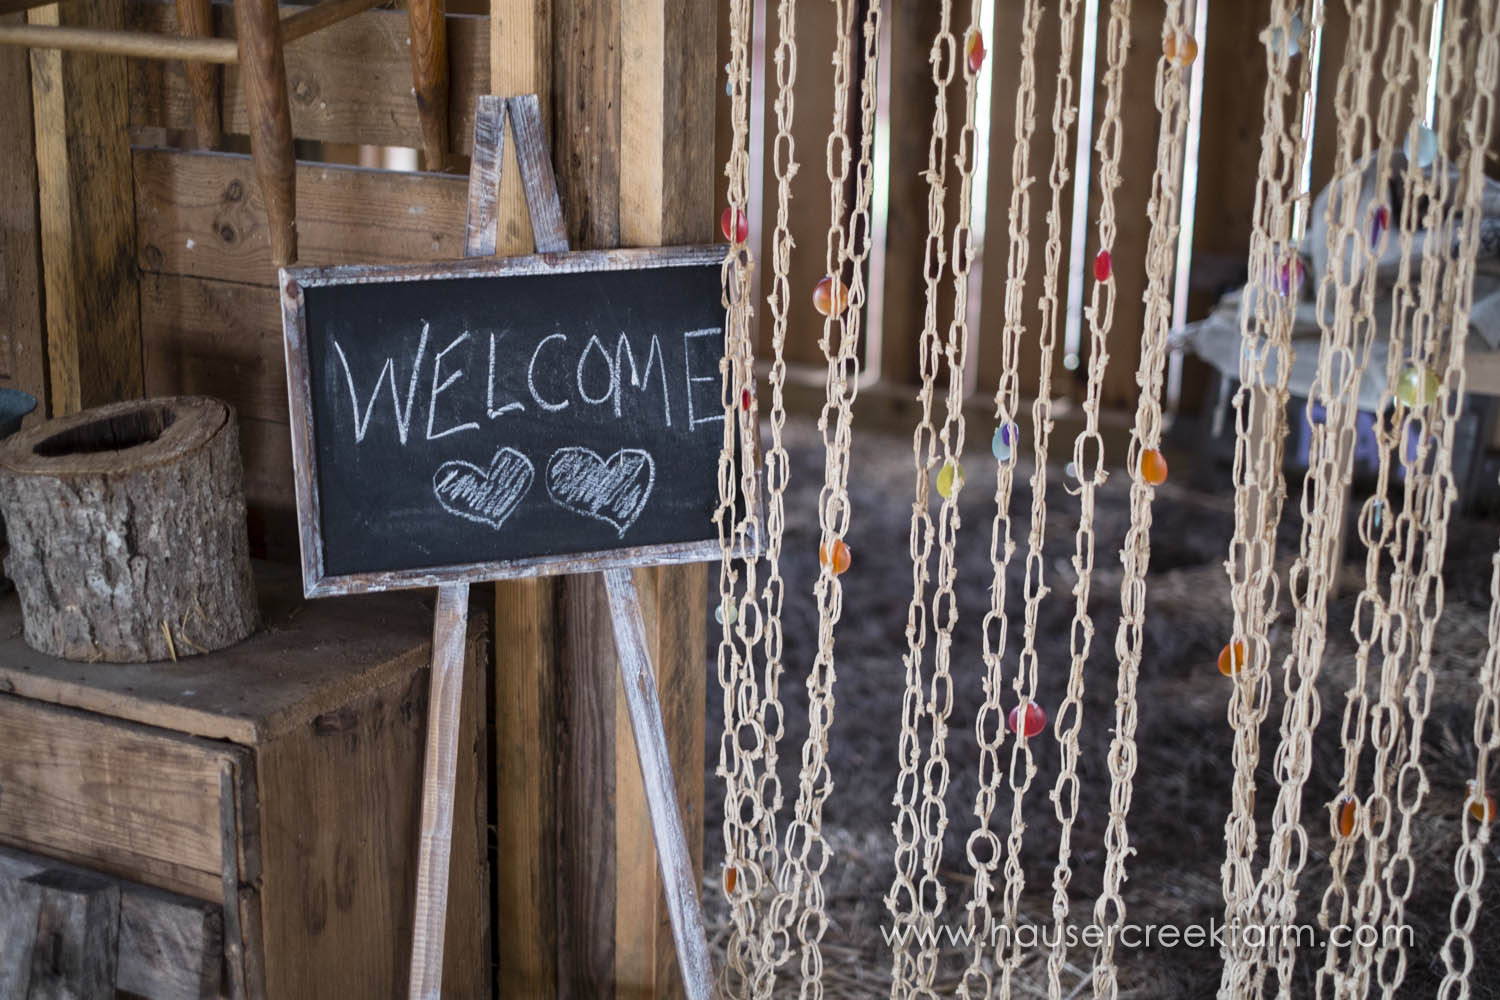 chalkboard-welcome-sign-hauser-creek-farm-photo-by-chris-fowler-1211color.jpg